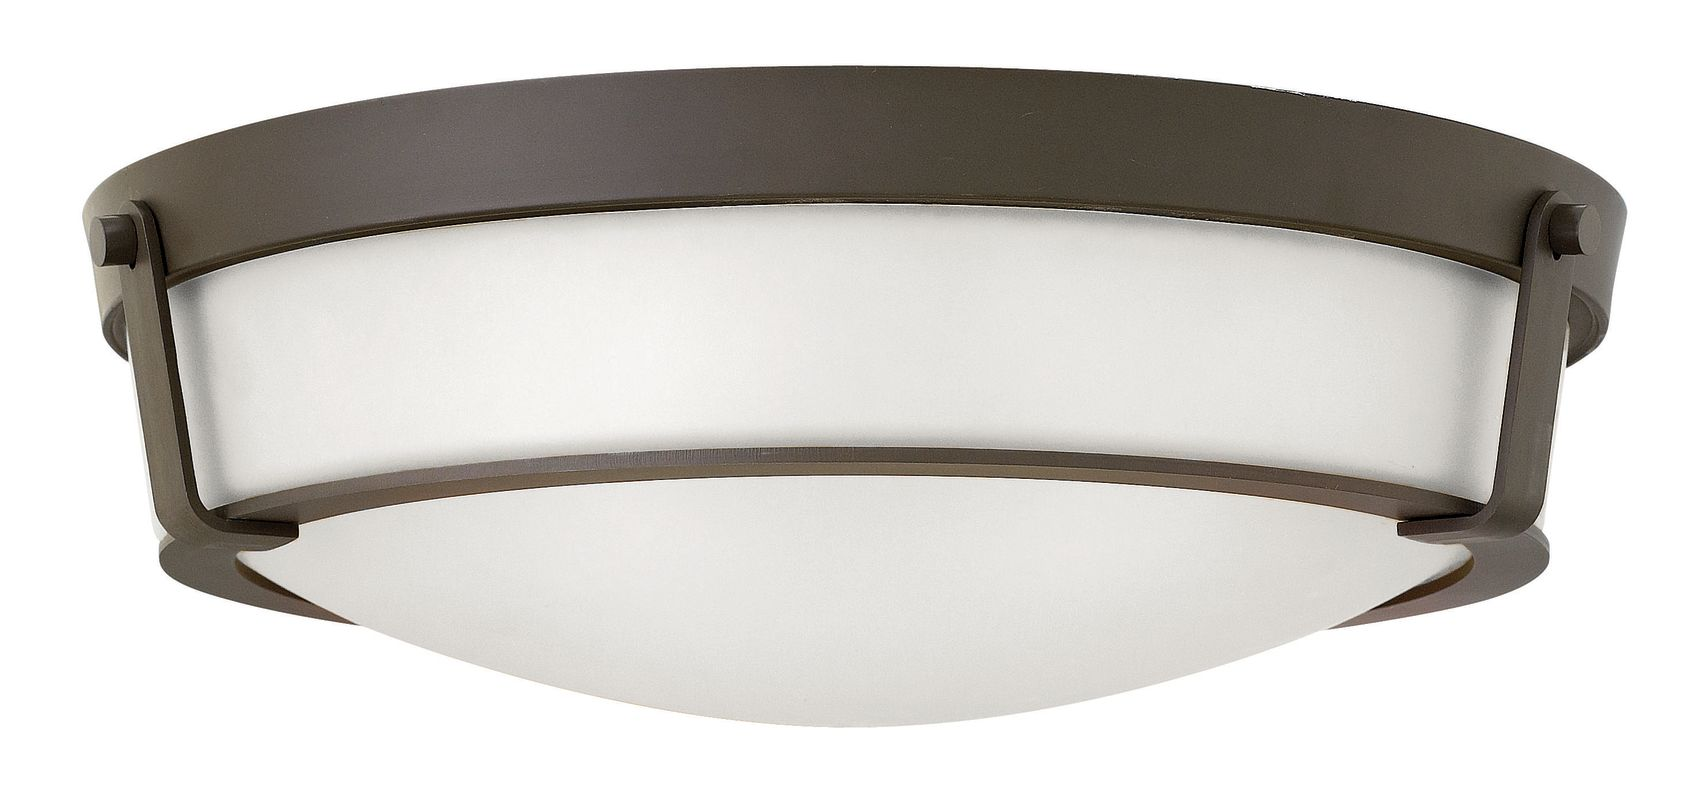 Hinkley Lighting 3226-GU24 4 Light Title 24 Fluorescent Flush Mount Sale $539.00 ITEM#: 2635219 MODEL# :3226OB-WH-GU24 UPC#: 640665322699 :